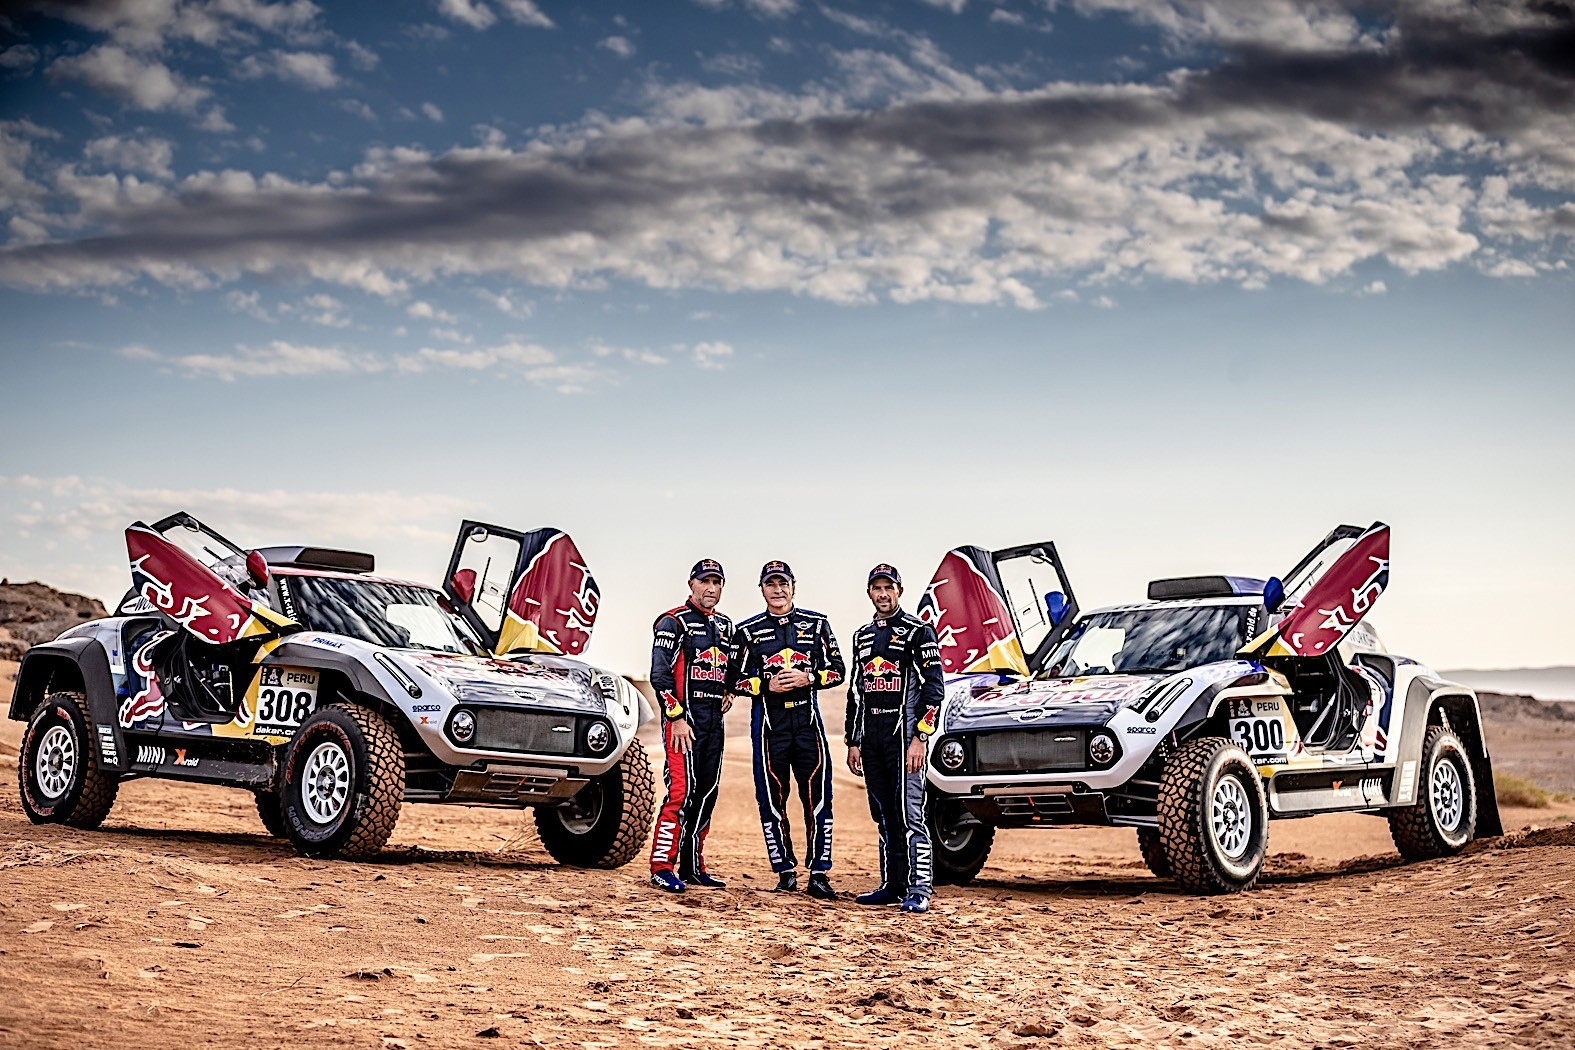 mini john cooper works buggies get ready for dakar with former peugeot champions autoevolution. Black Bedroom Furniture Sets. Home Design Ideas